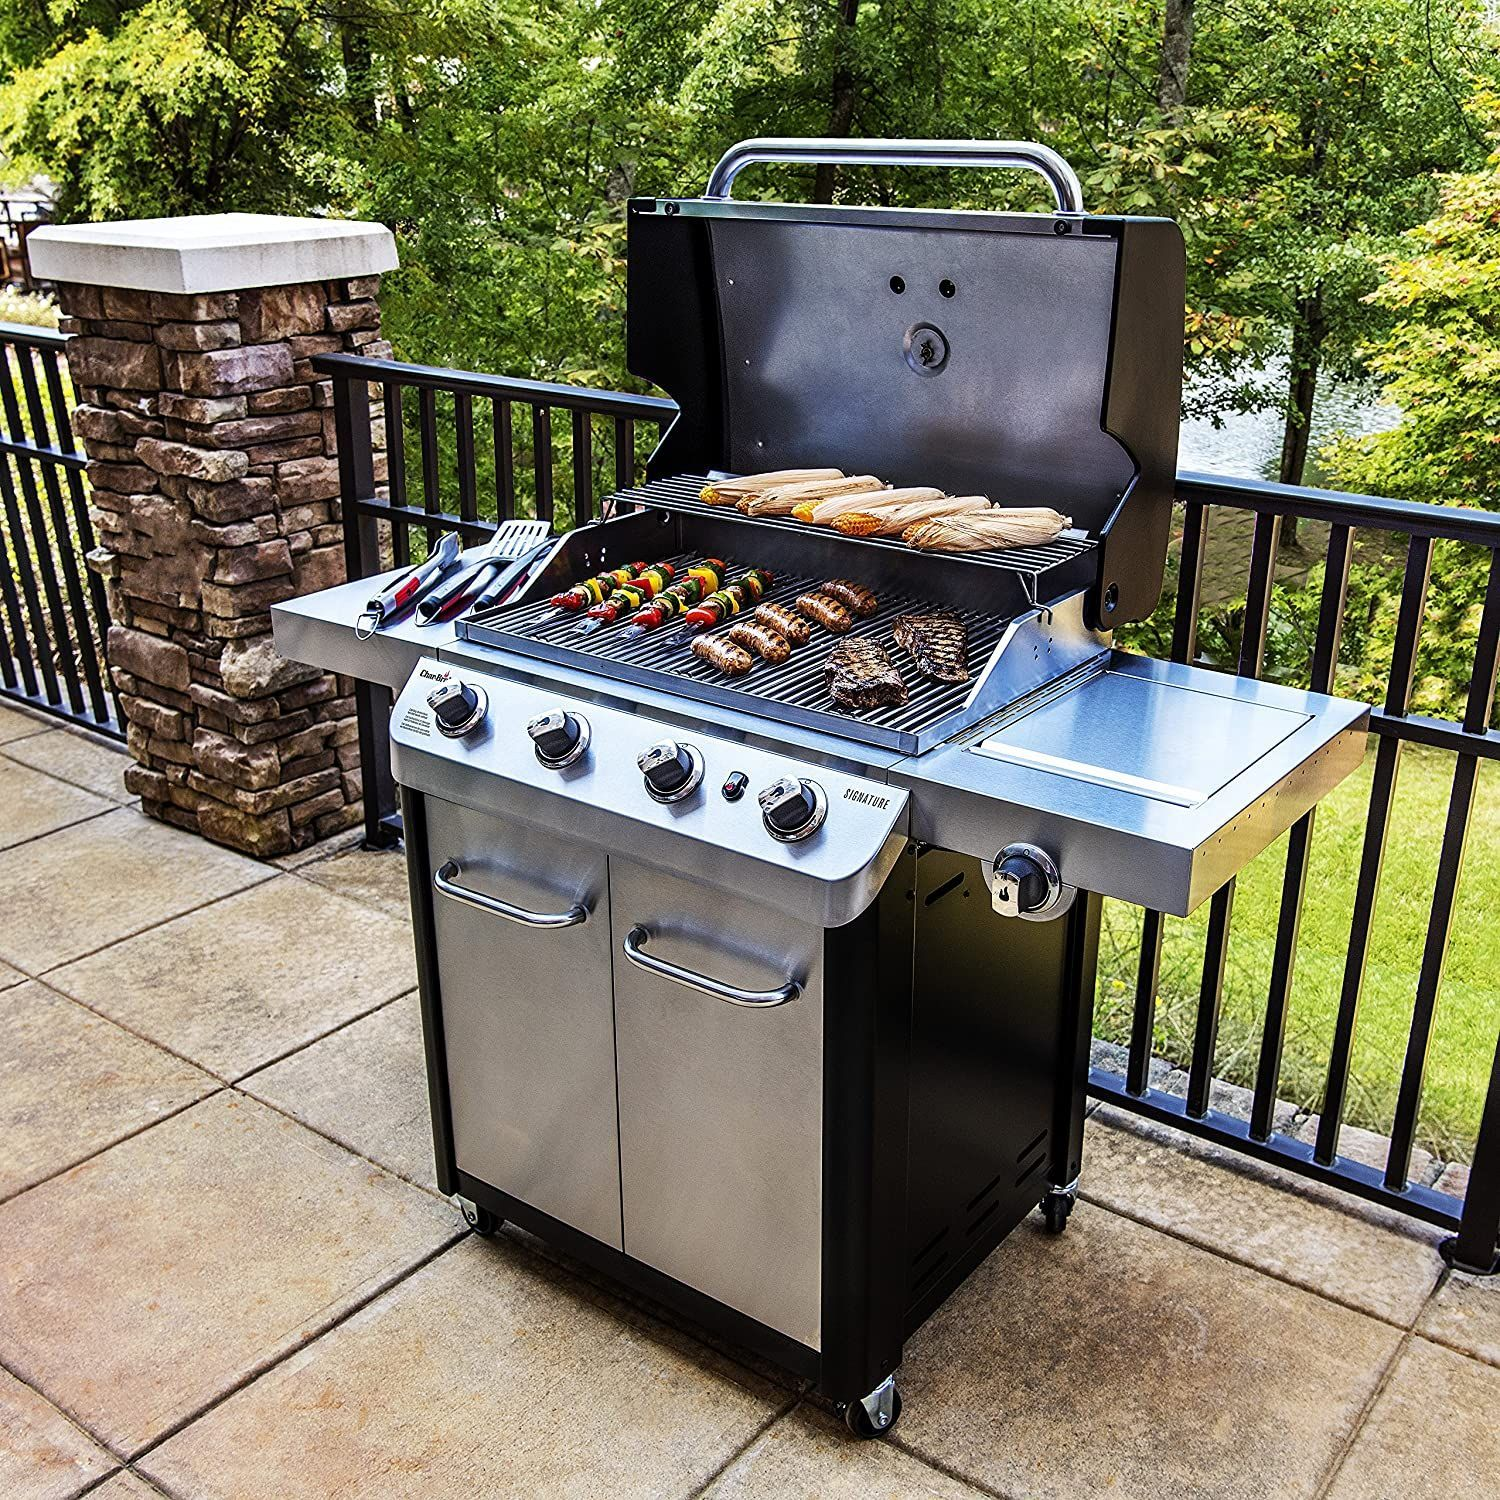 Best Top 15 Grills For Apartment Balcony In 2020 Apartment Balcony Grills Top In 2020 Apartment Balconies Balcony Grill Grilling